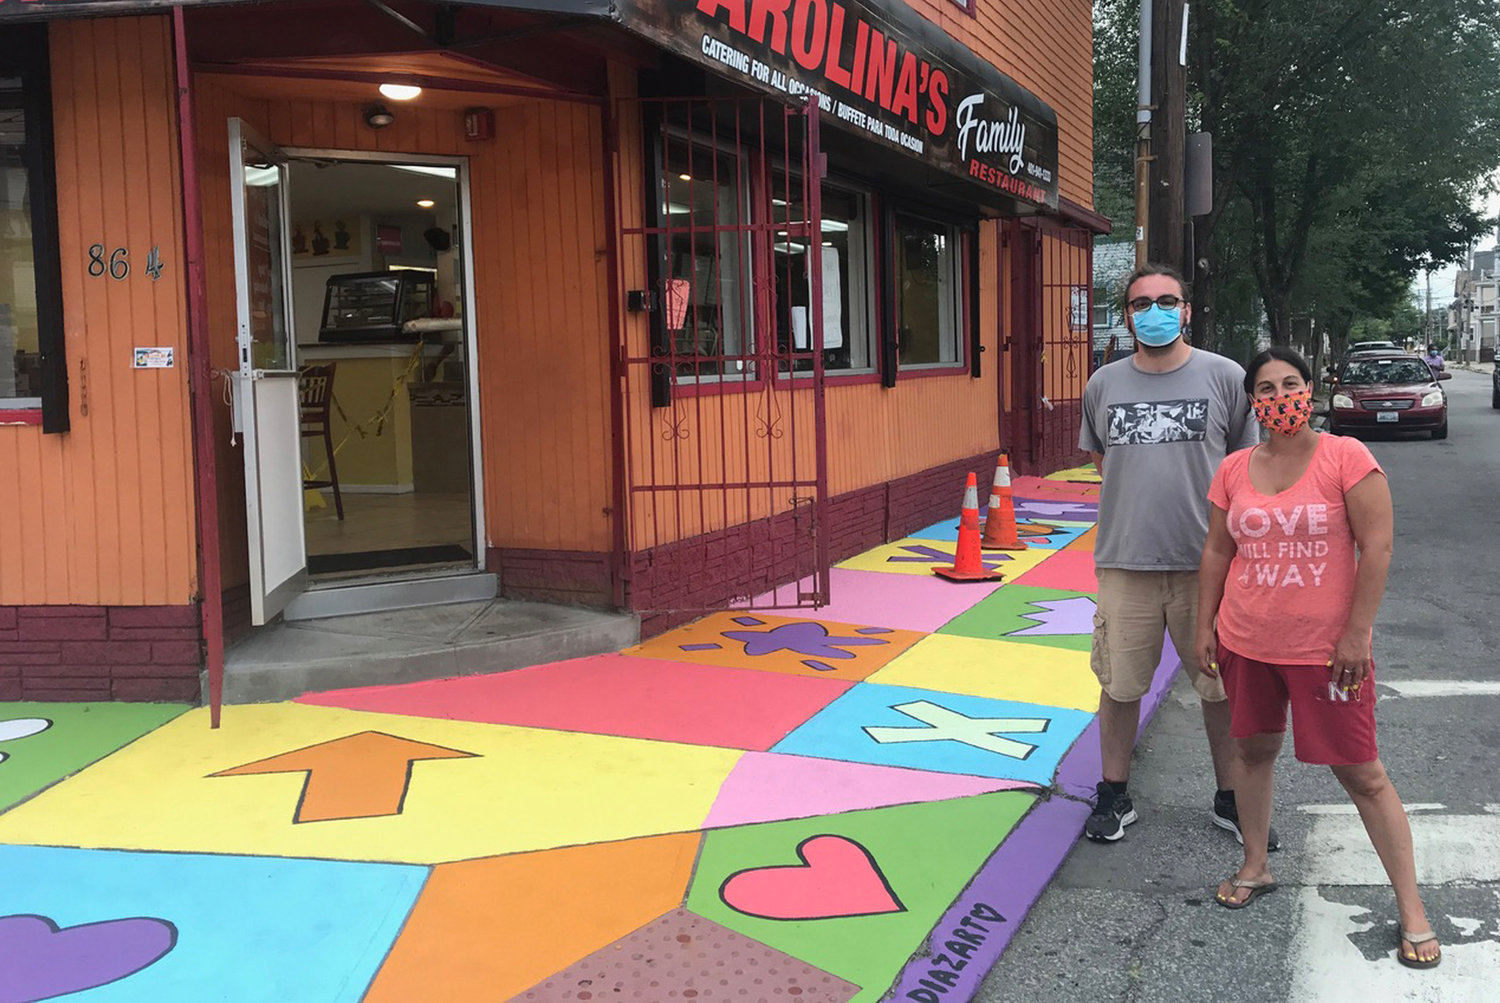 Artists Pablo Youngs & Tamara Díaz stand before finished sidewalk art, corner of Oxford and Broad Streets